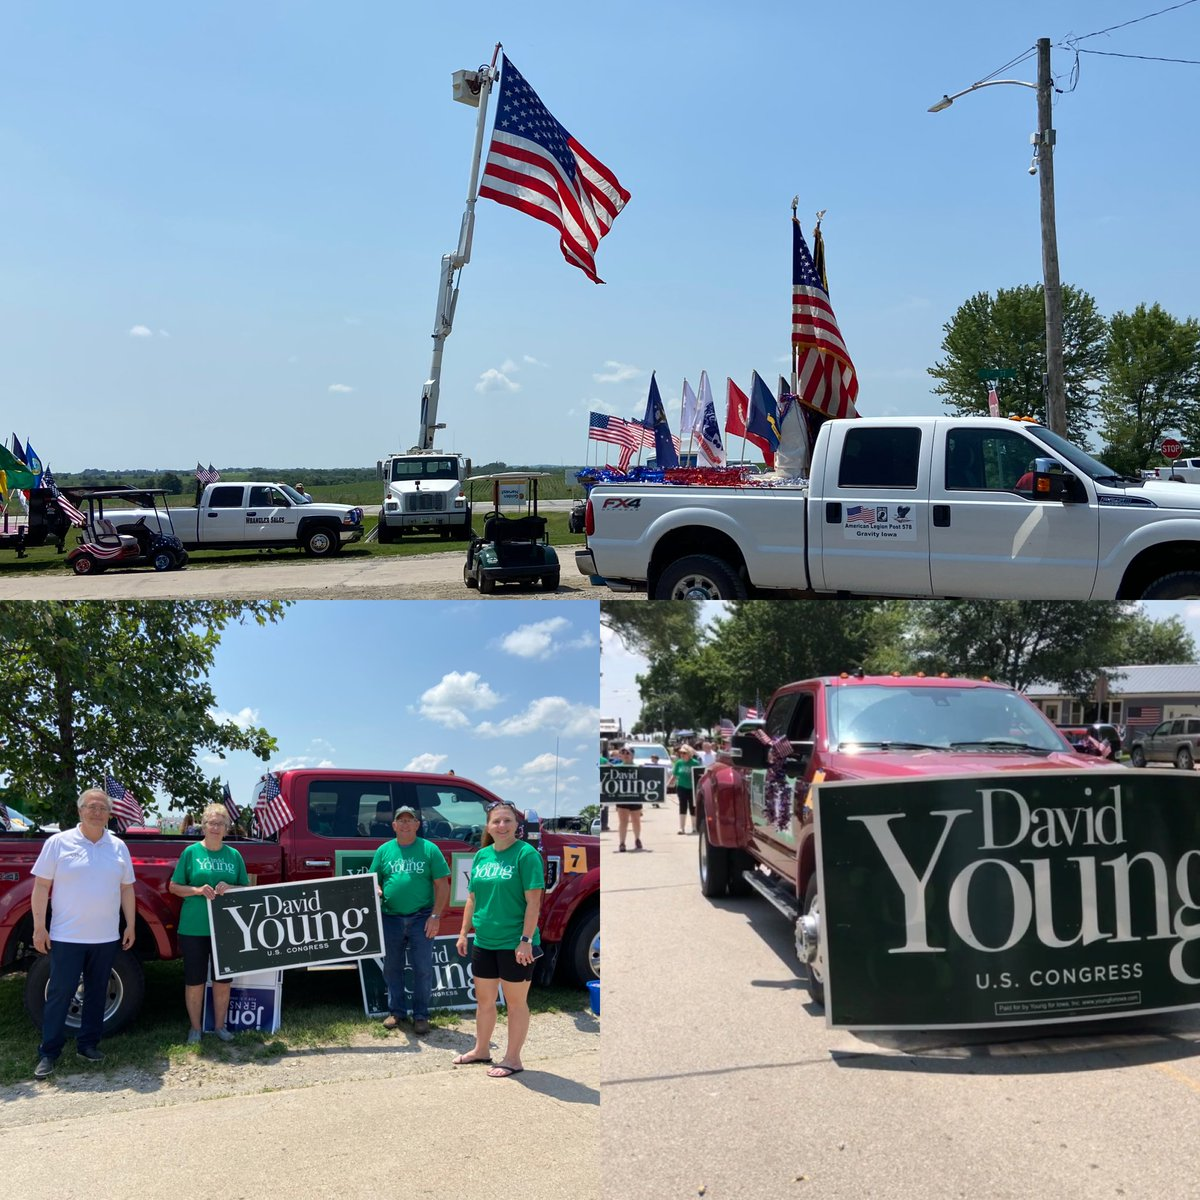 It was starting to get warm in New Market, but we made it through the parade. I love the giant U.S. flag they fly every year alongside the highway. #IA03